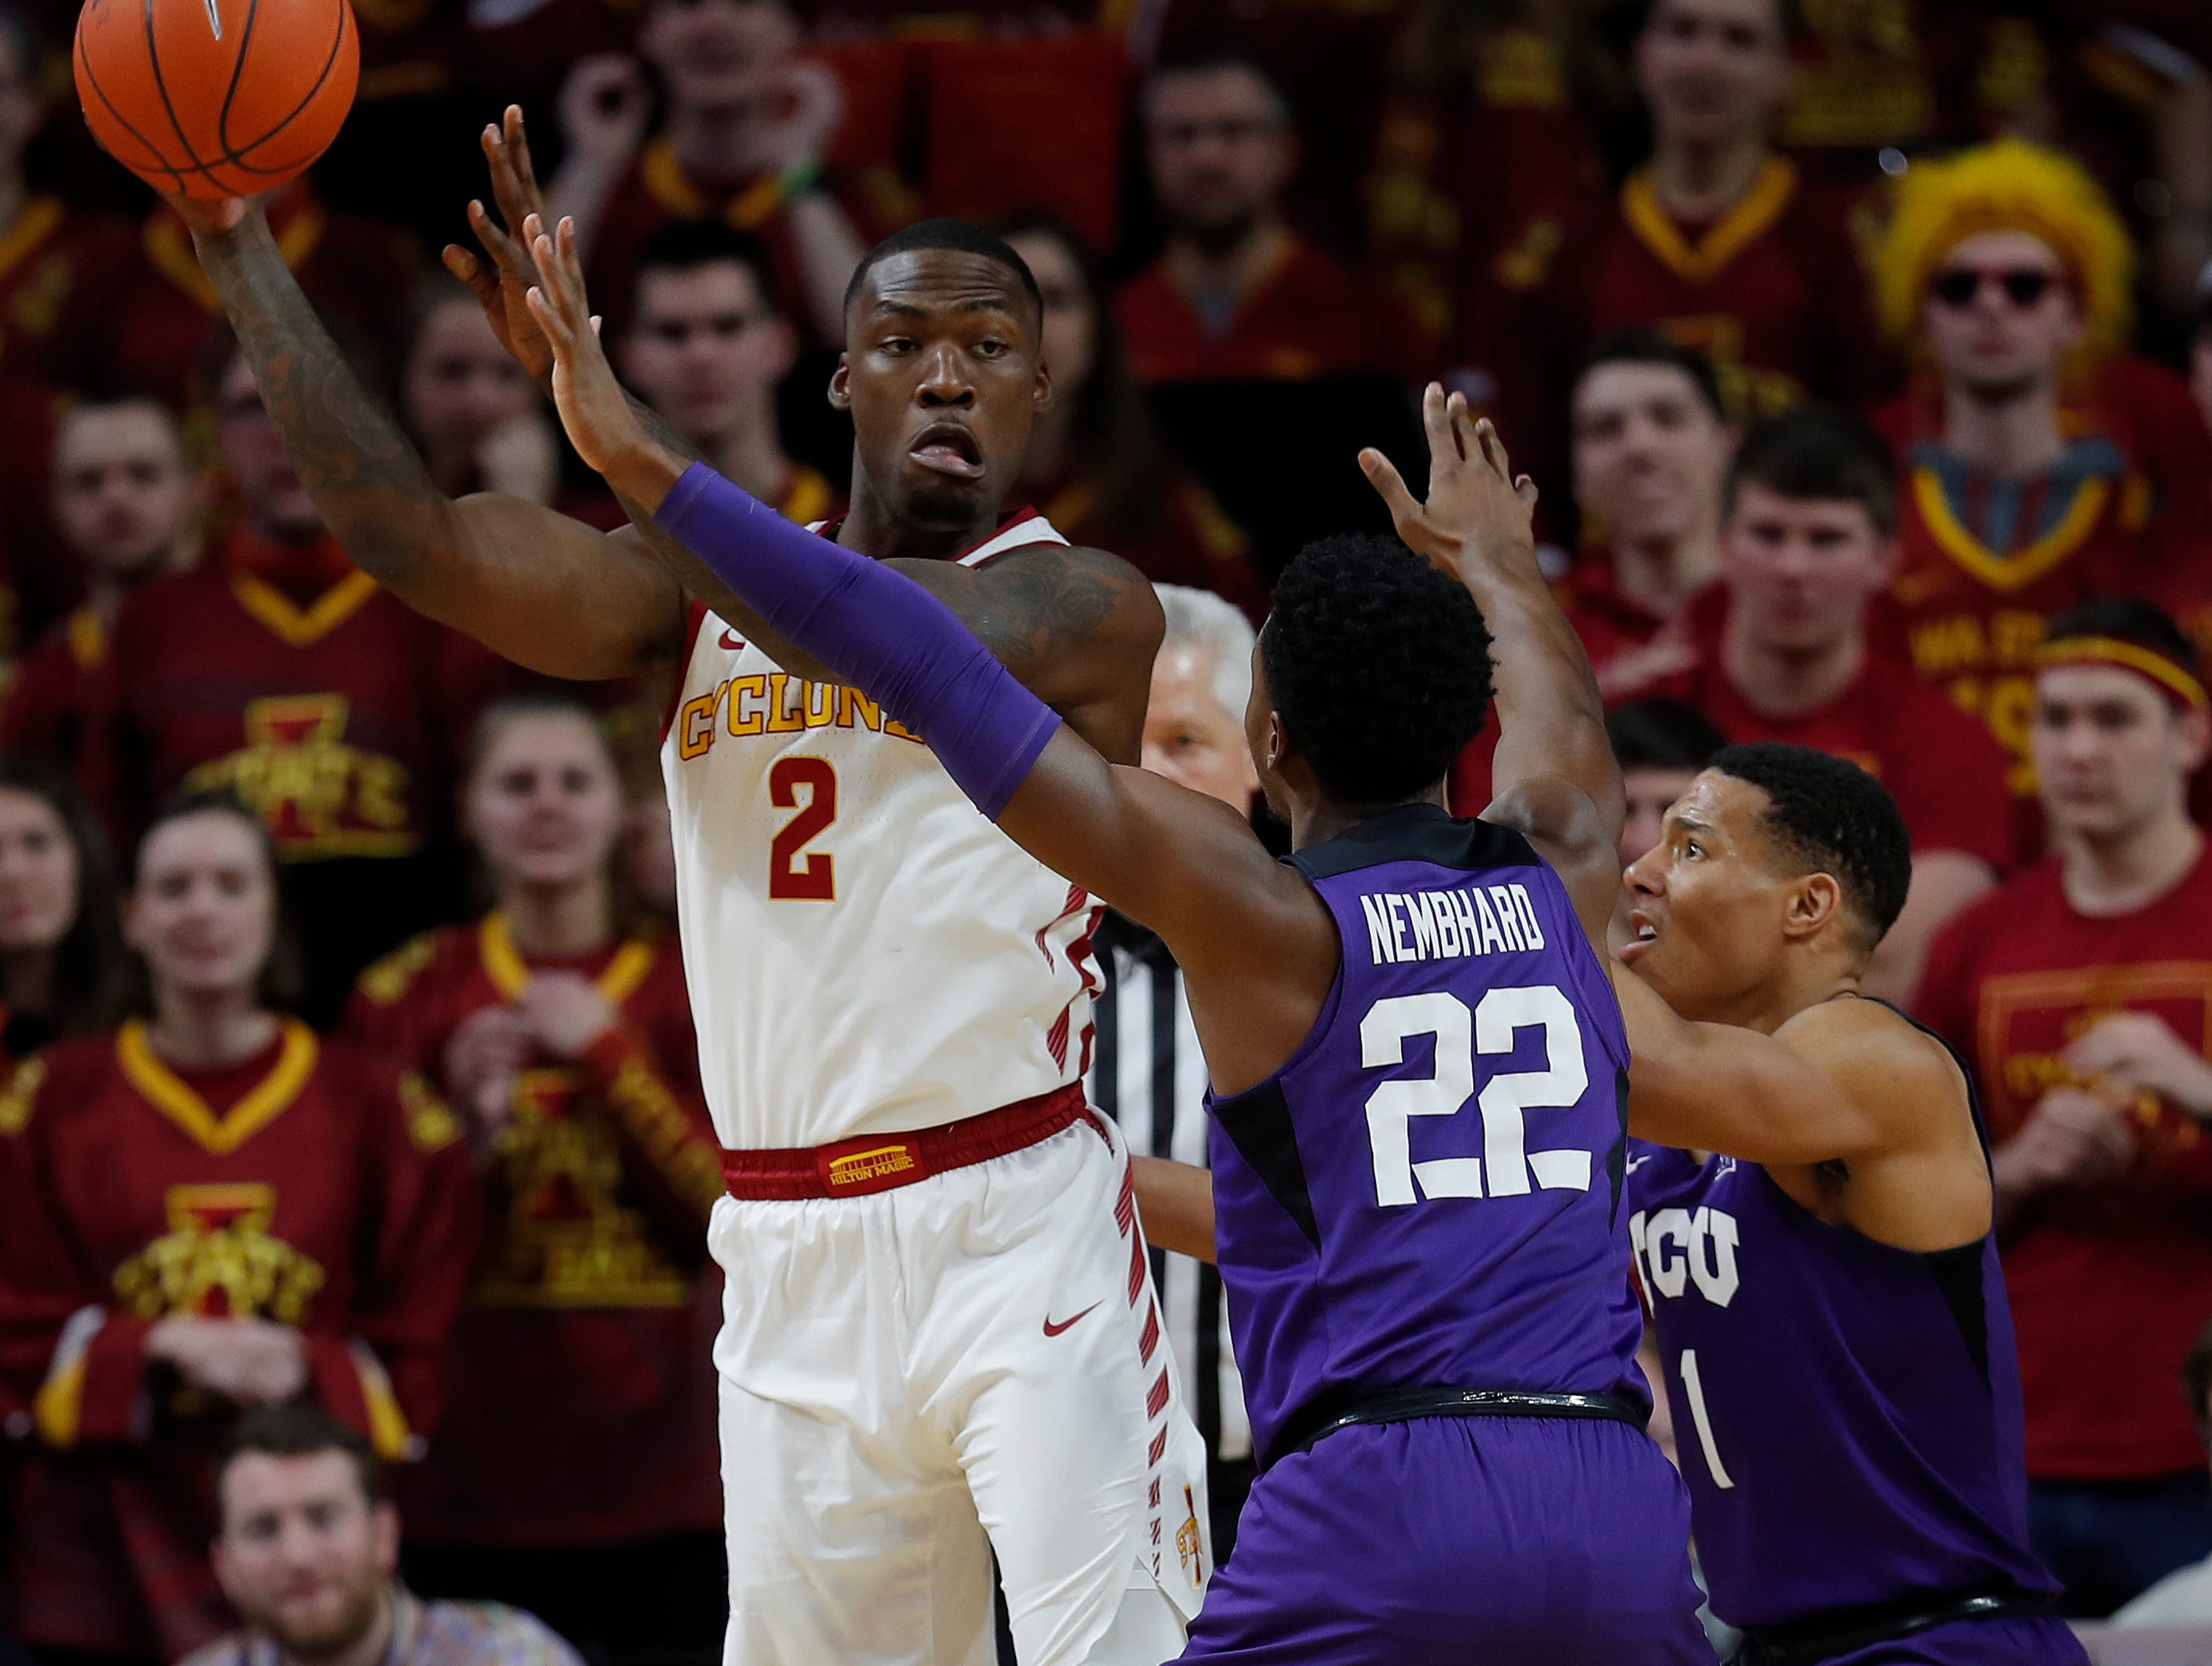 Iowa State forward Cameron Lard, left, tries to get a pass off as TCU guard R.J. Nembhard, center, and TCU guard Desmond Bane, right, defend during their game Saturday, Feb. 9, 2019, in Ames.